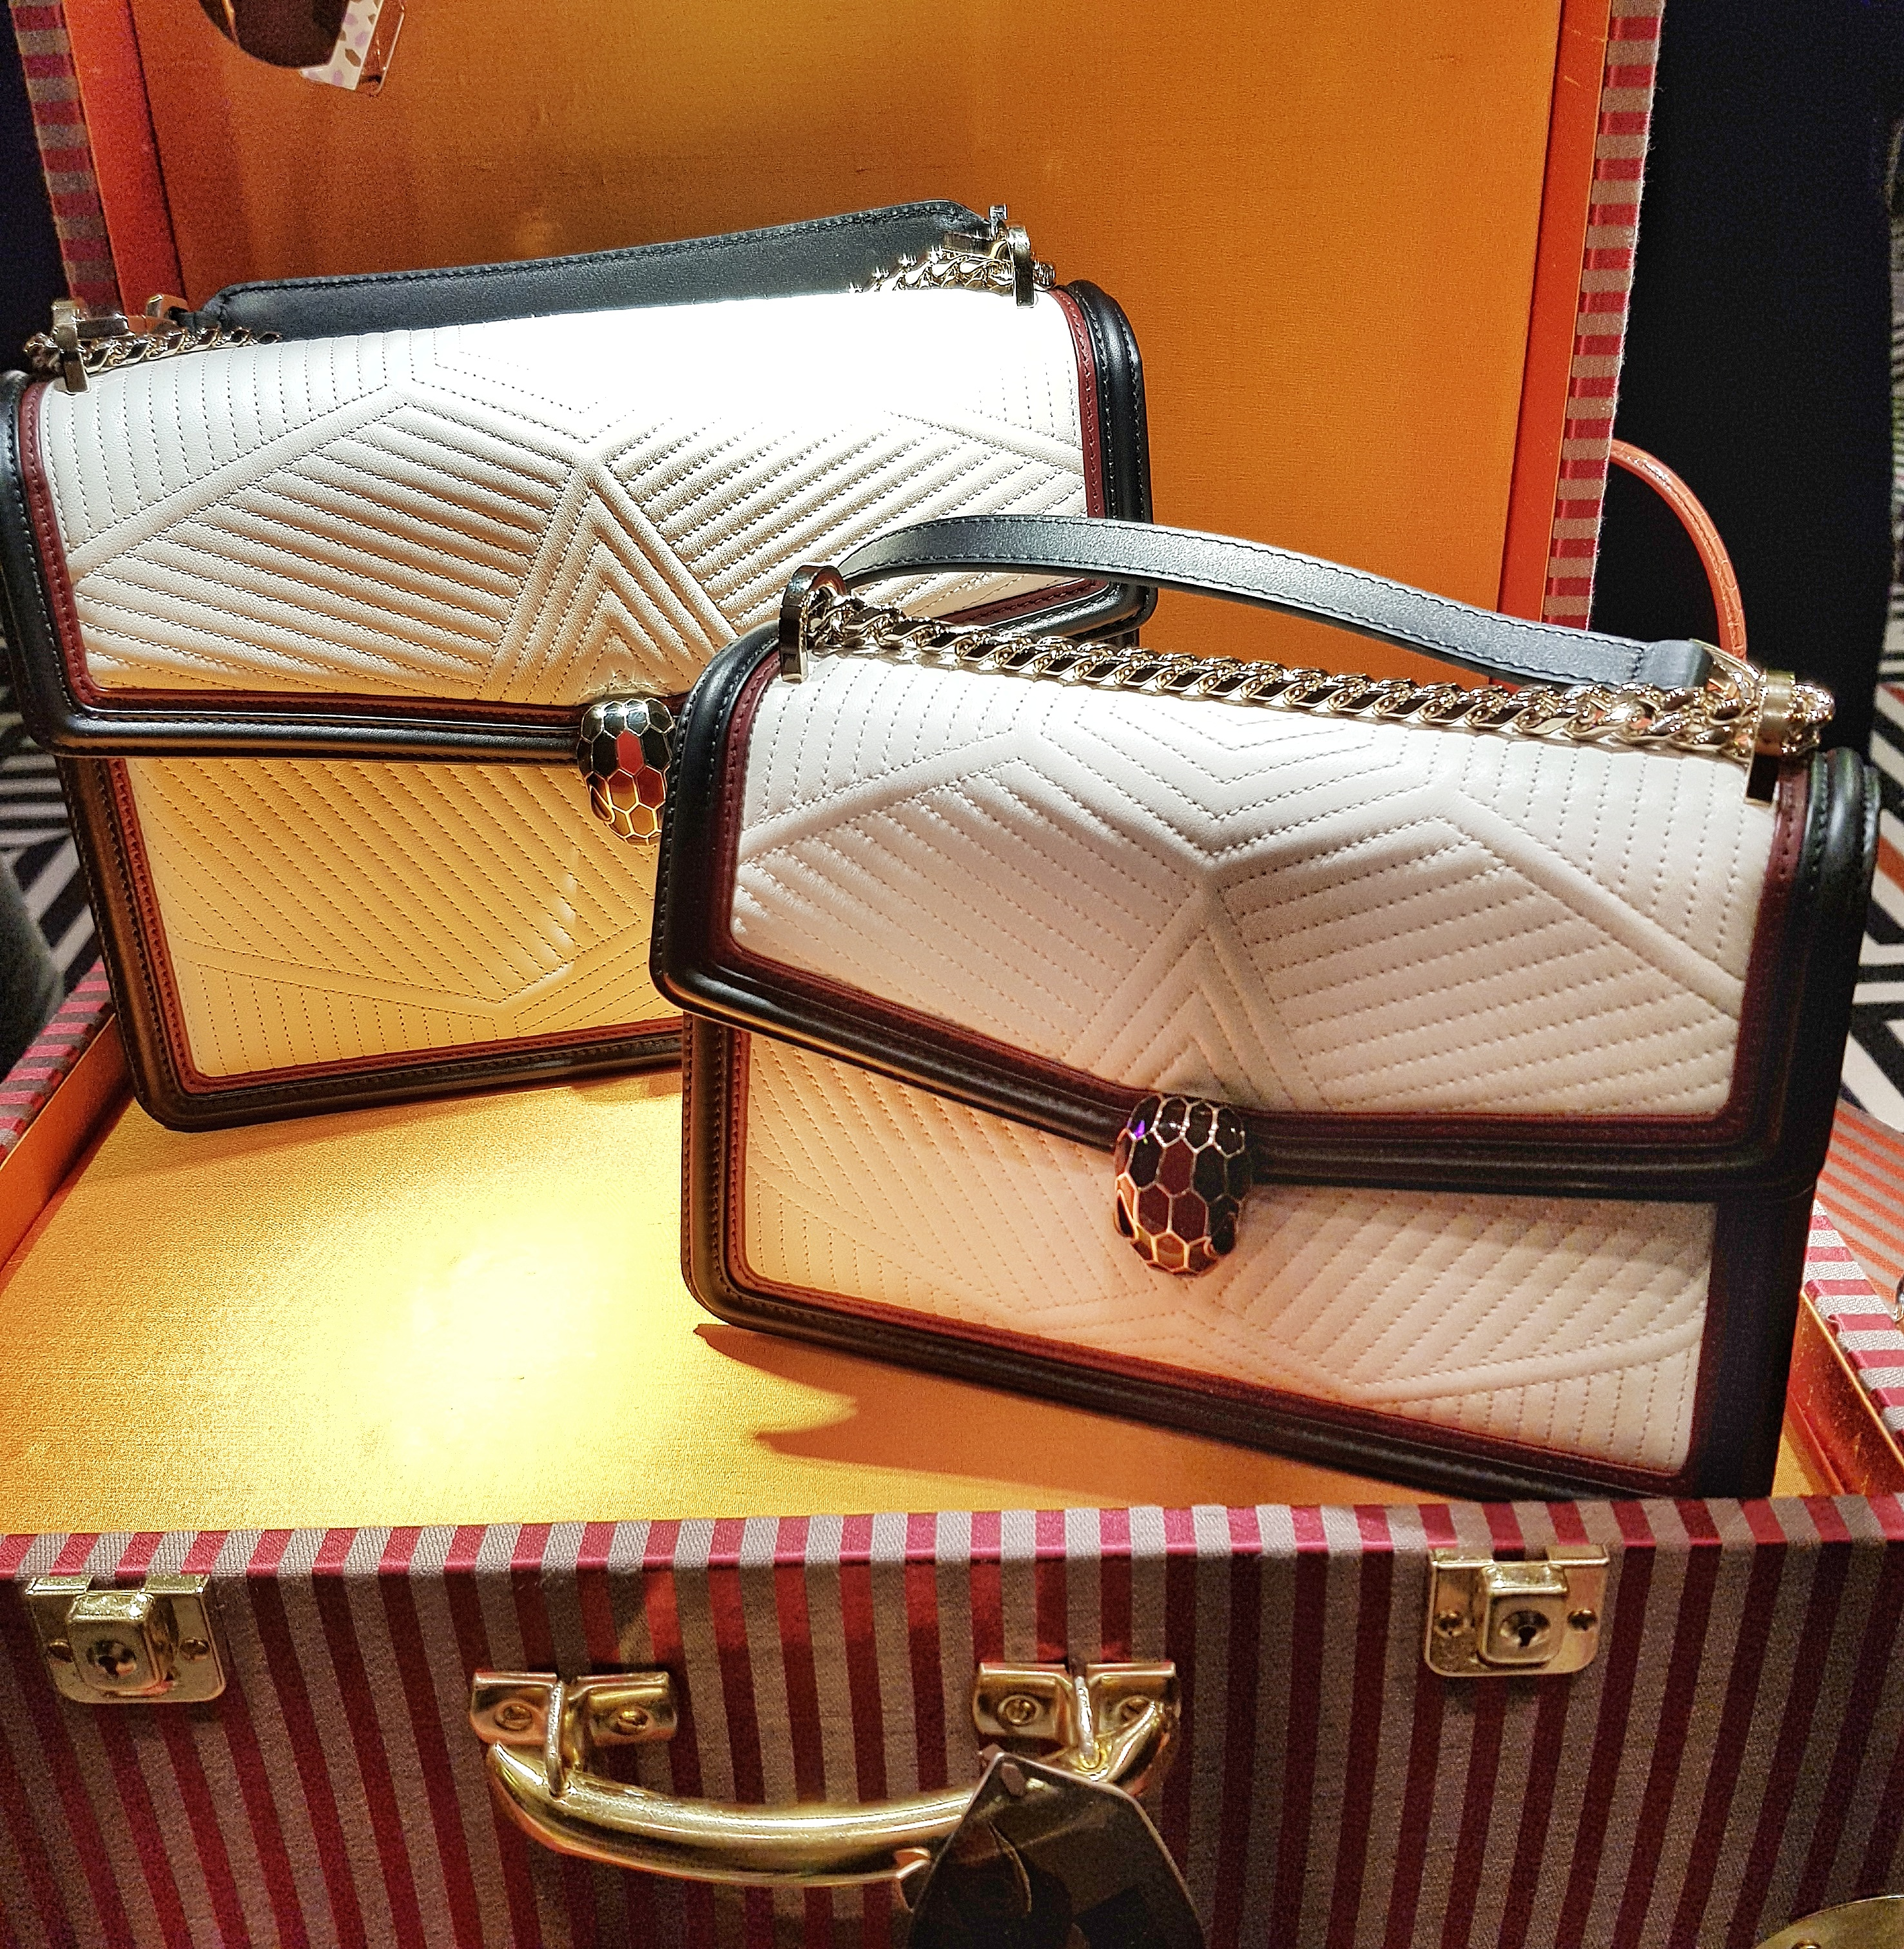 Because Of The Chanel Classic Flap But Why Go For Another Quilted Bag Like Everyone Else When You Can Be Different And Something More Luxe